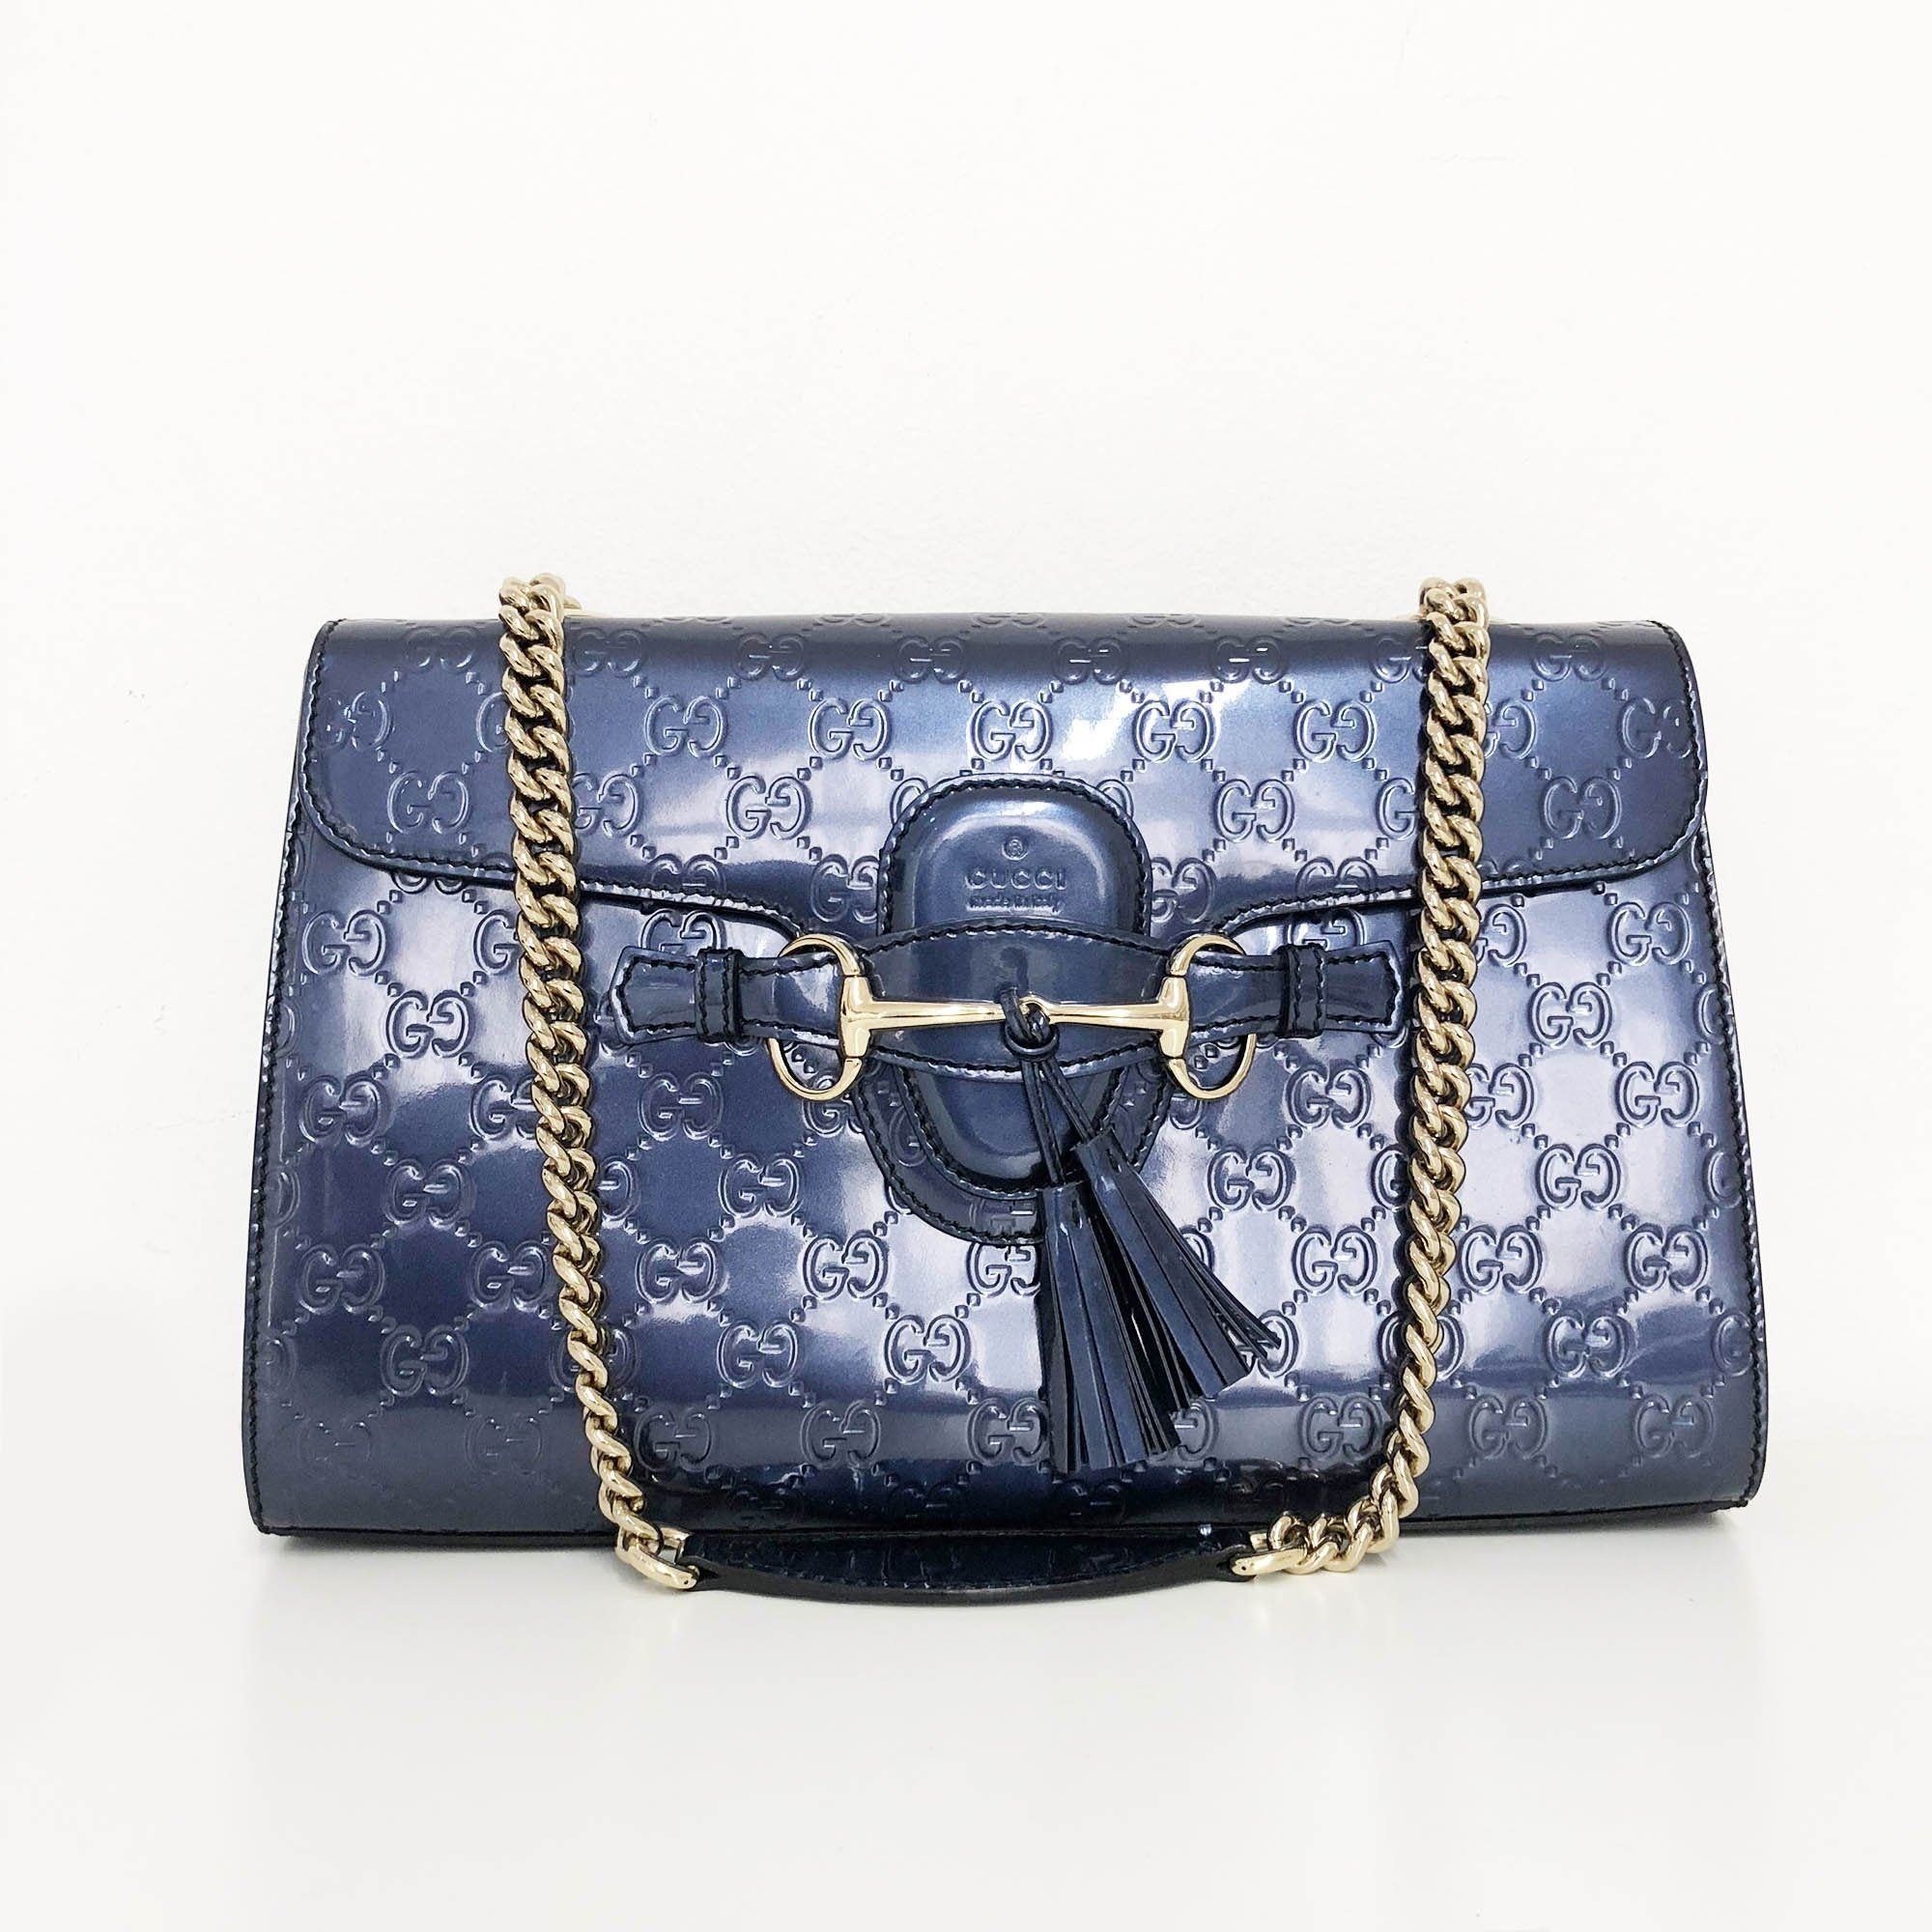 Gucci Emily Medium Guccissima Leather Chain Shoulder Bag